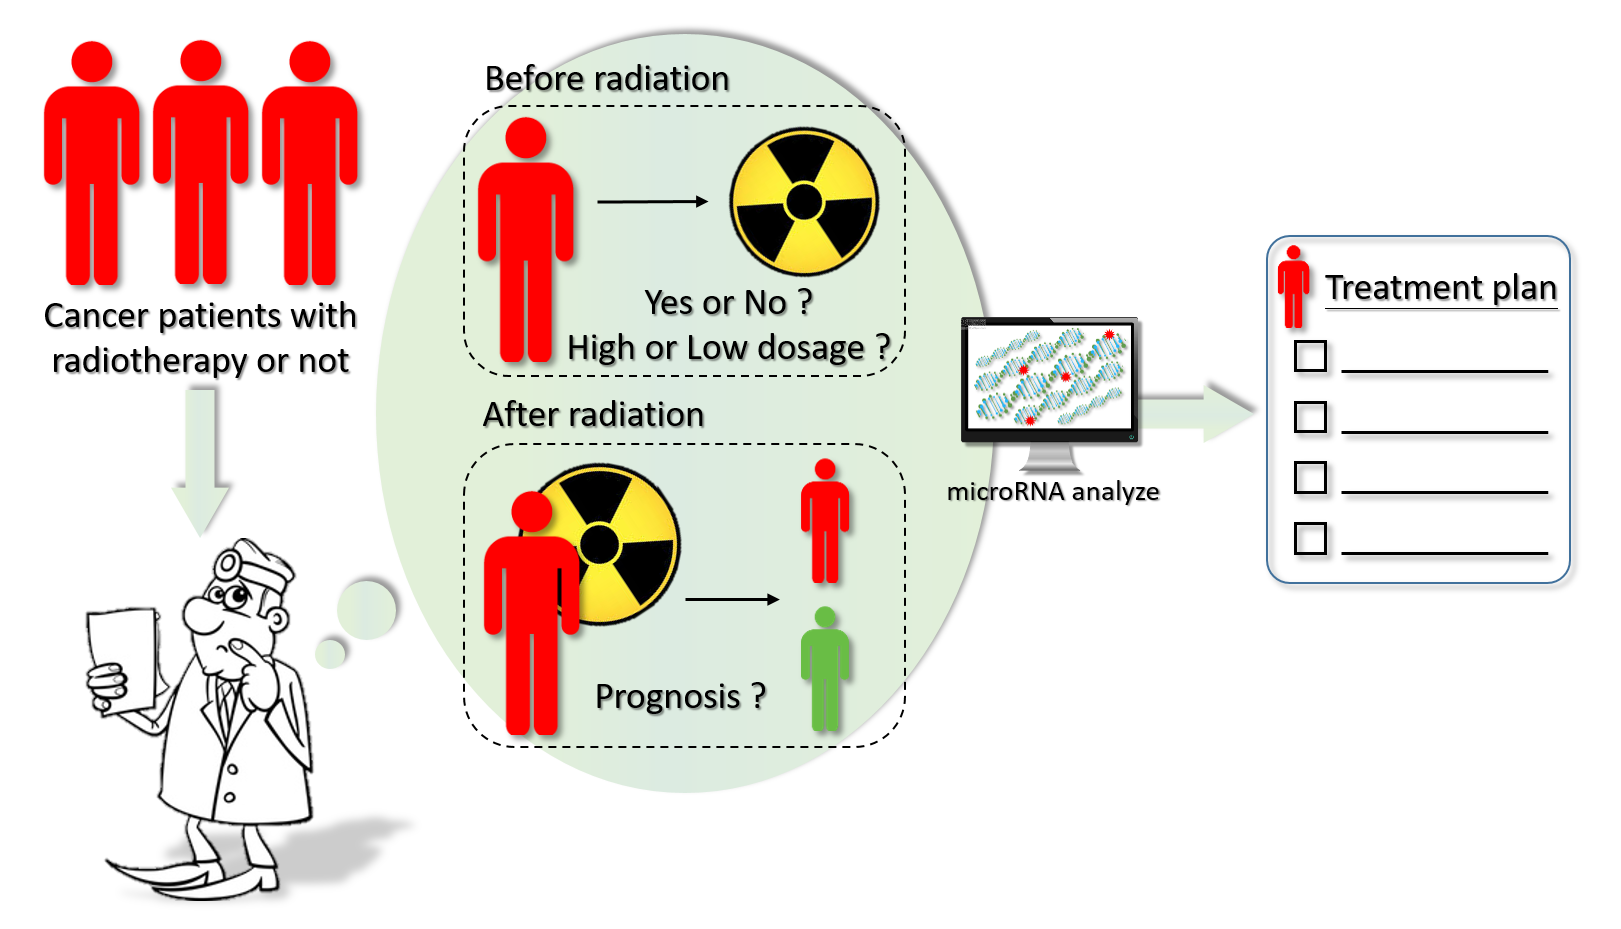 Analyzermethod for predicting the prognosis of cancer after radiation therapy